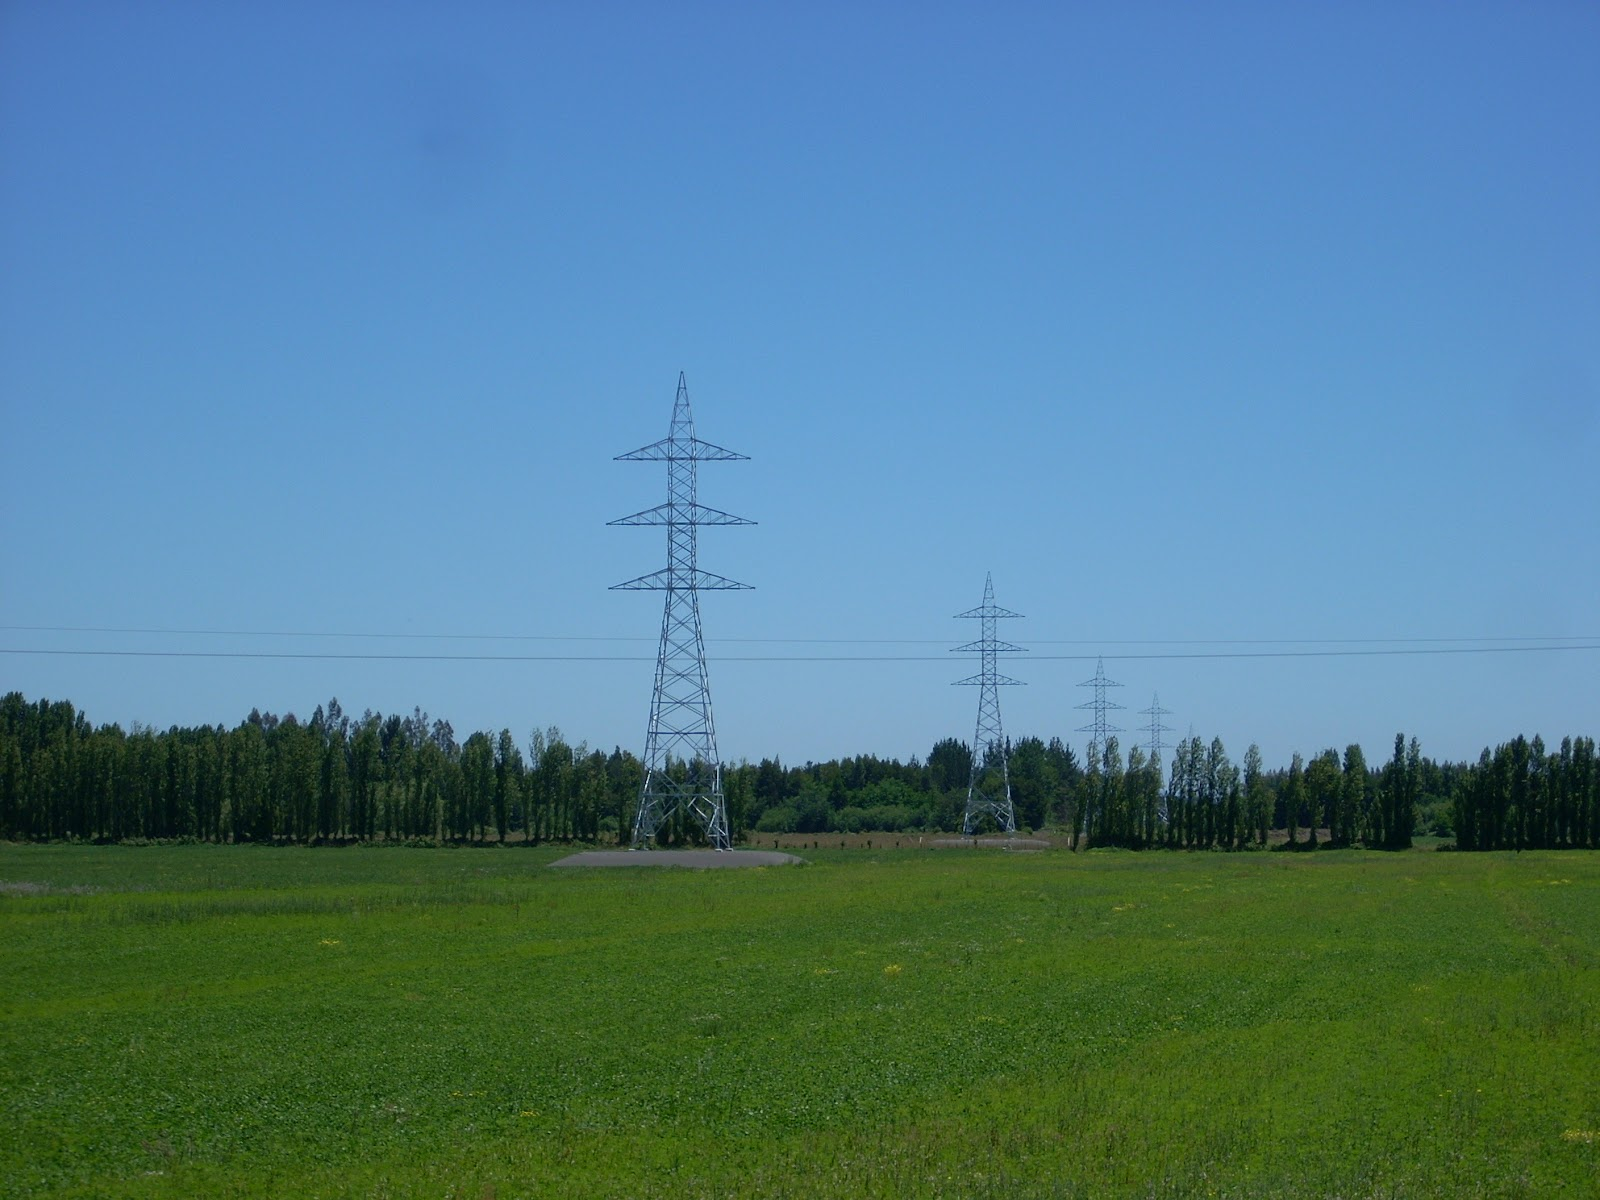 You don't often see a huge long string of pylons with no power cables